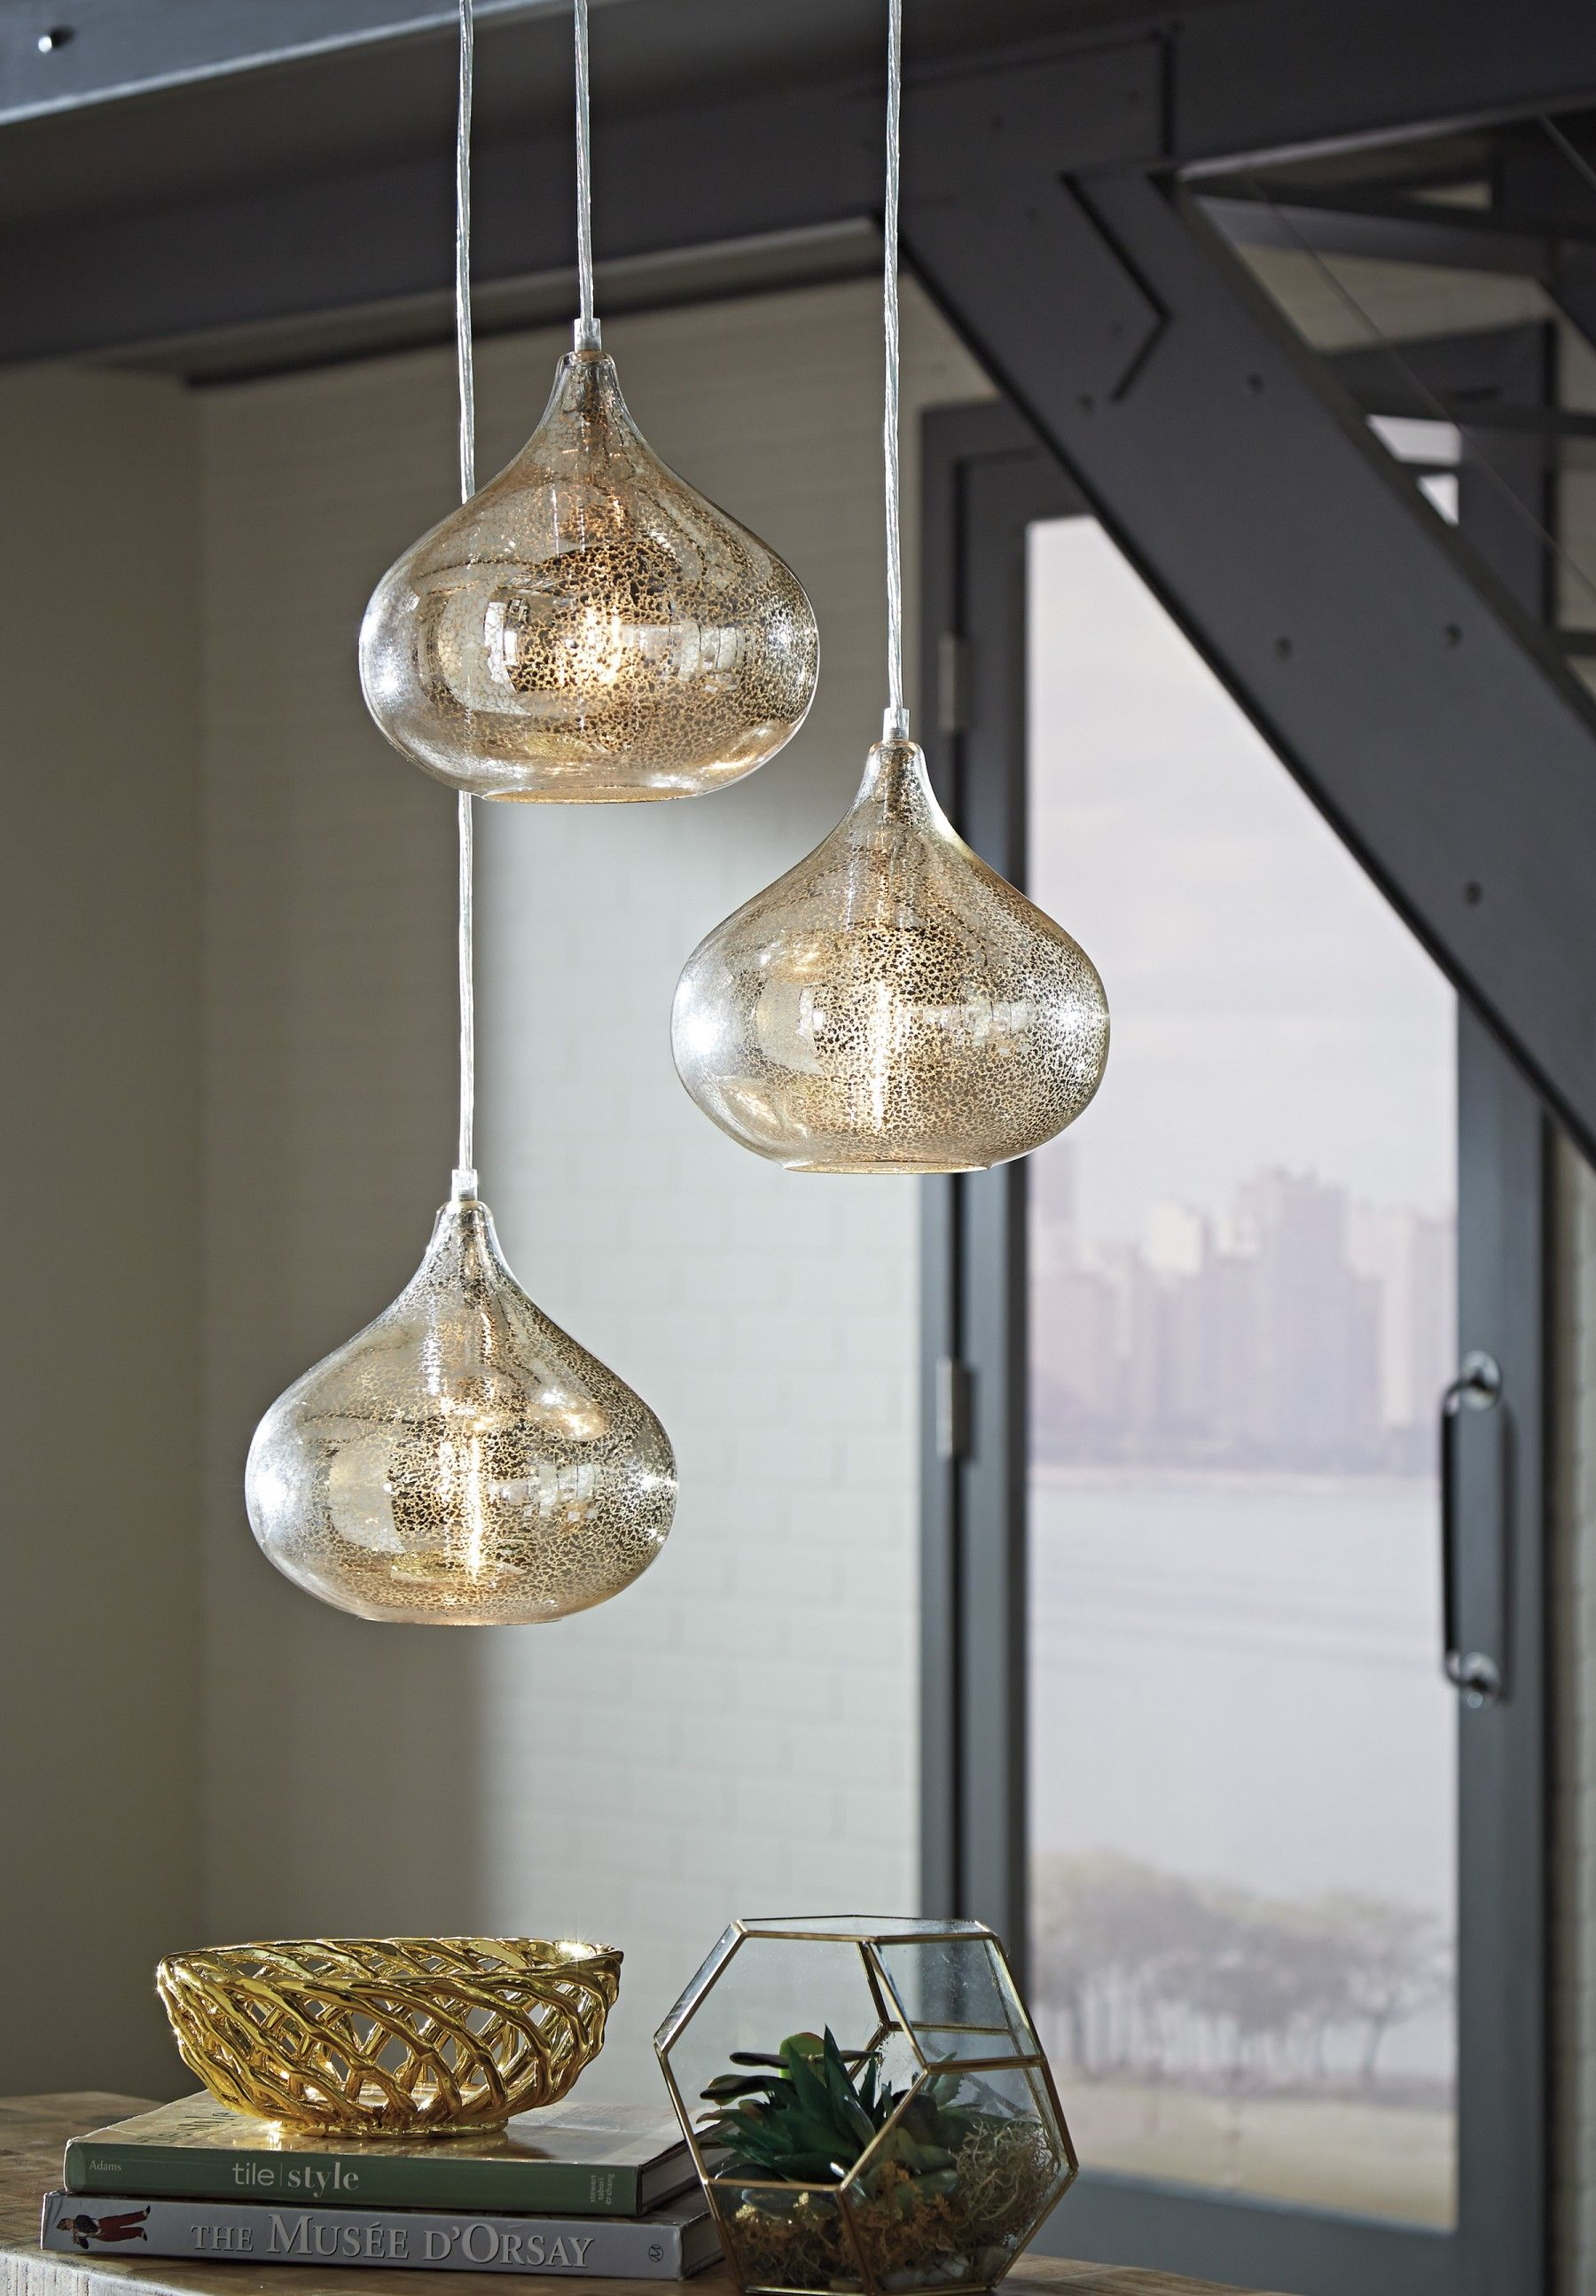 chandeliers globe allen glass us images and en ethan pendant shop pendants lighting disney brz seeded null